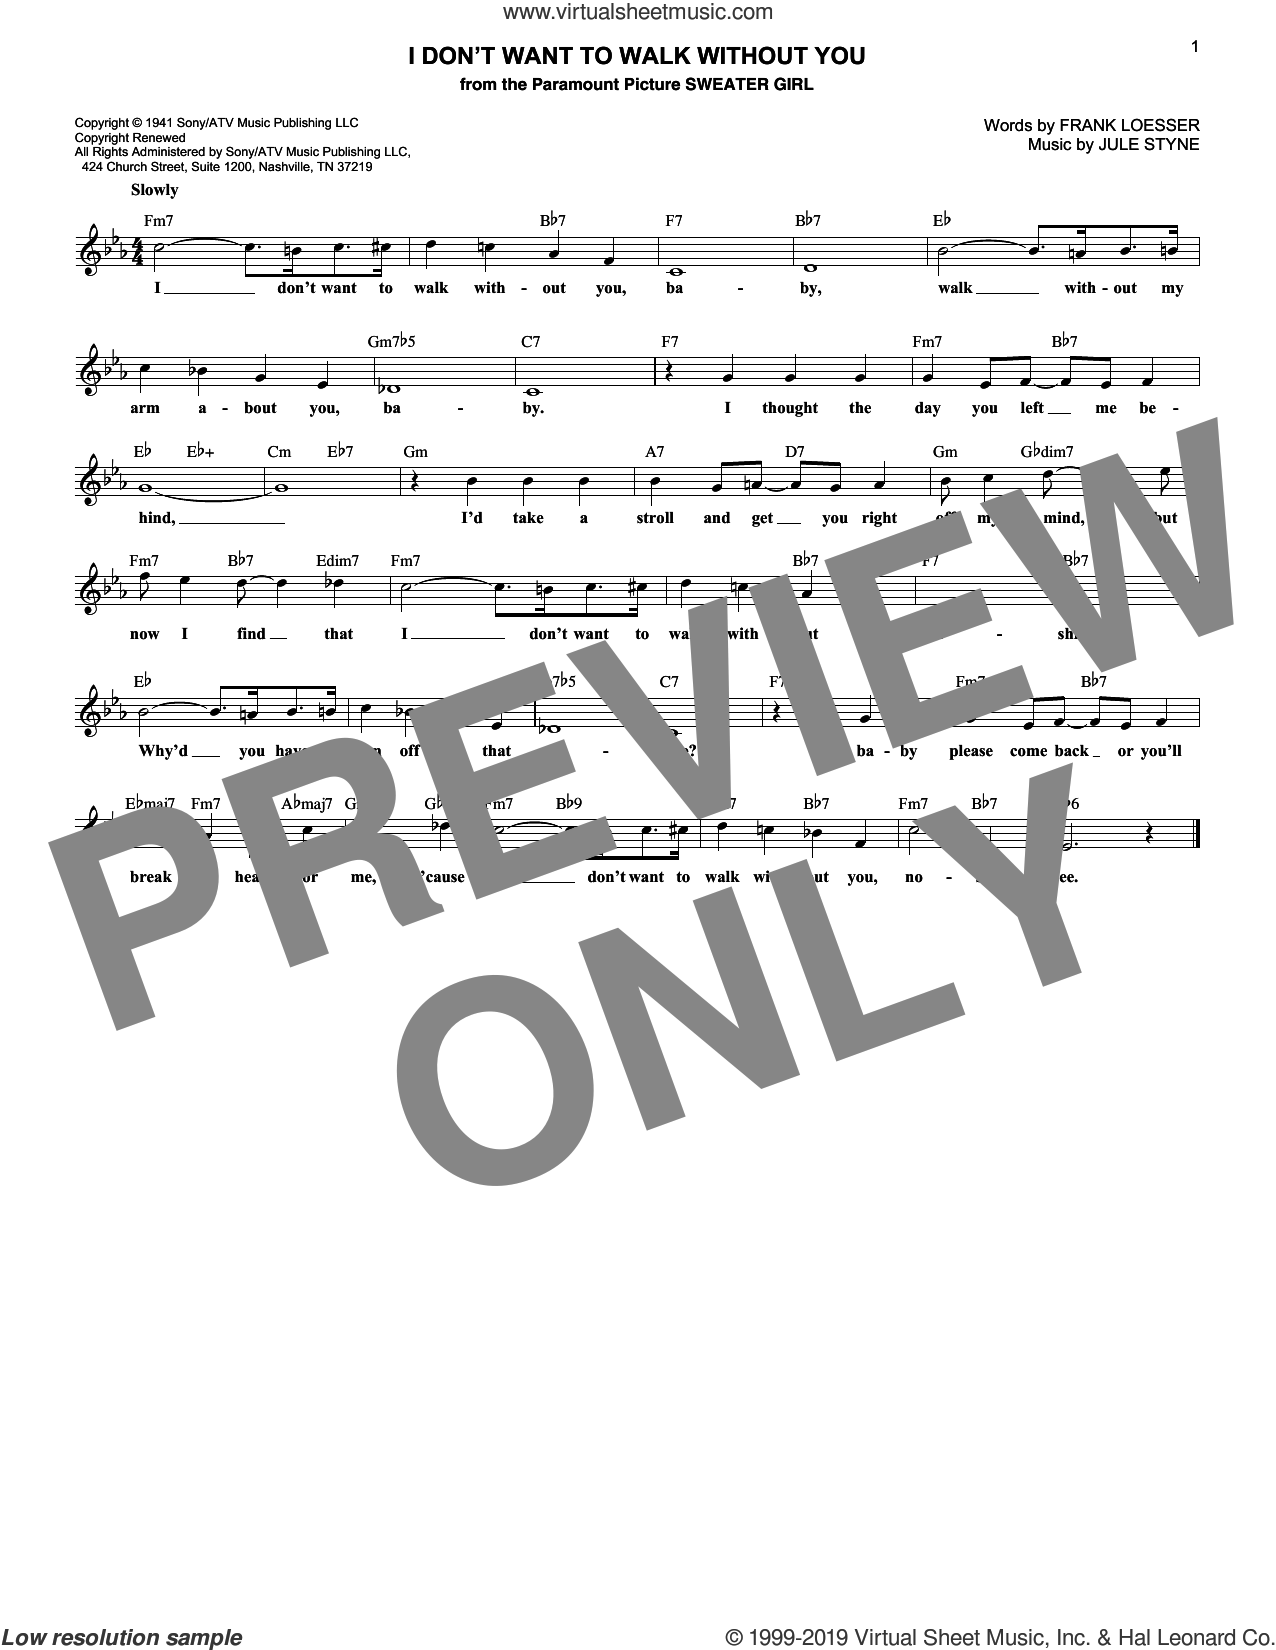 I Don't Want To Walk Without You sheet music for voice and other instruments (fake book) by Jule Styne and Frank Loesser, intermediate skill level